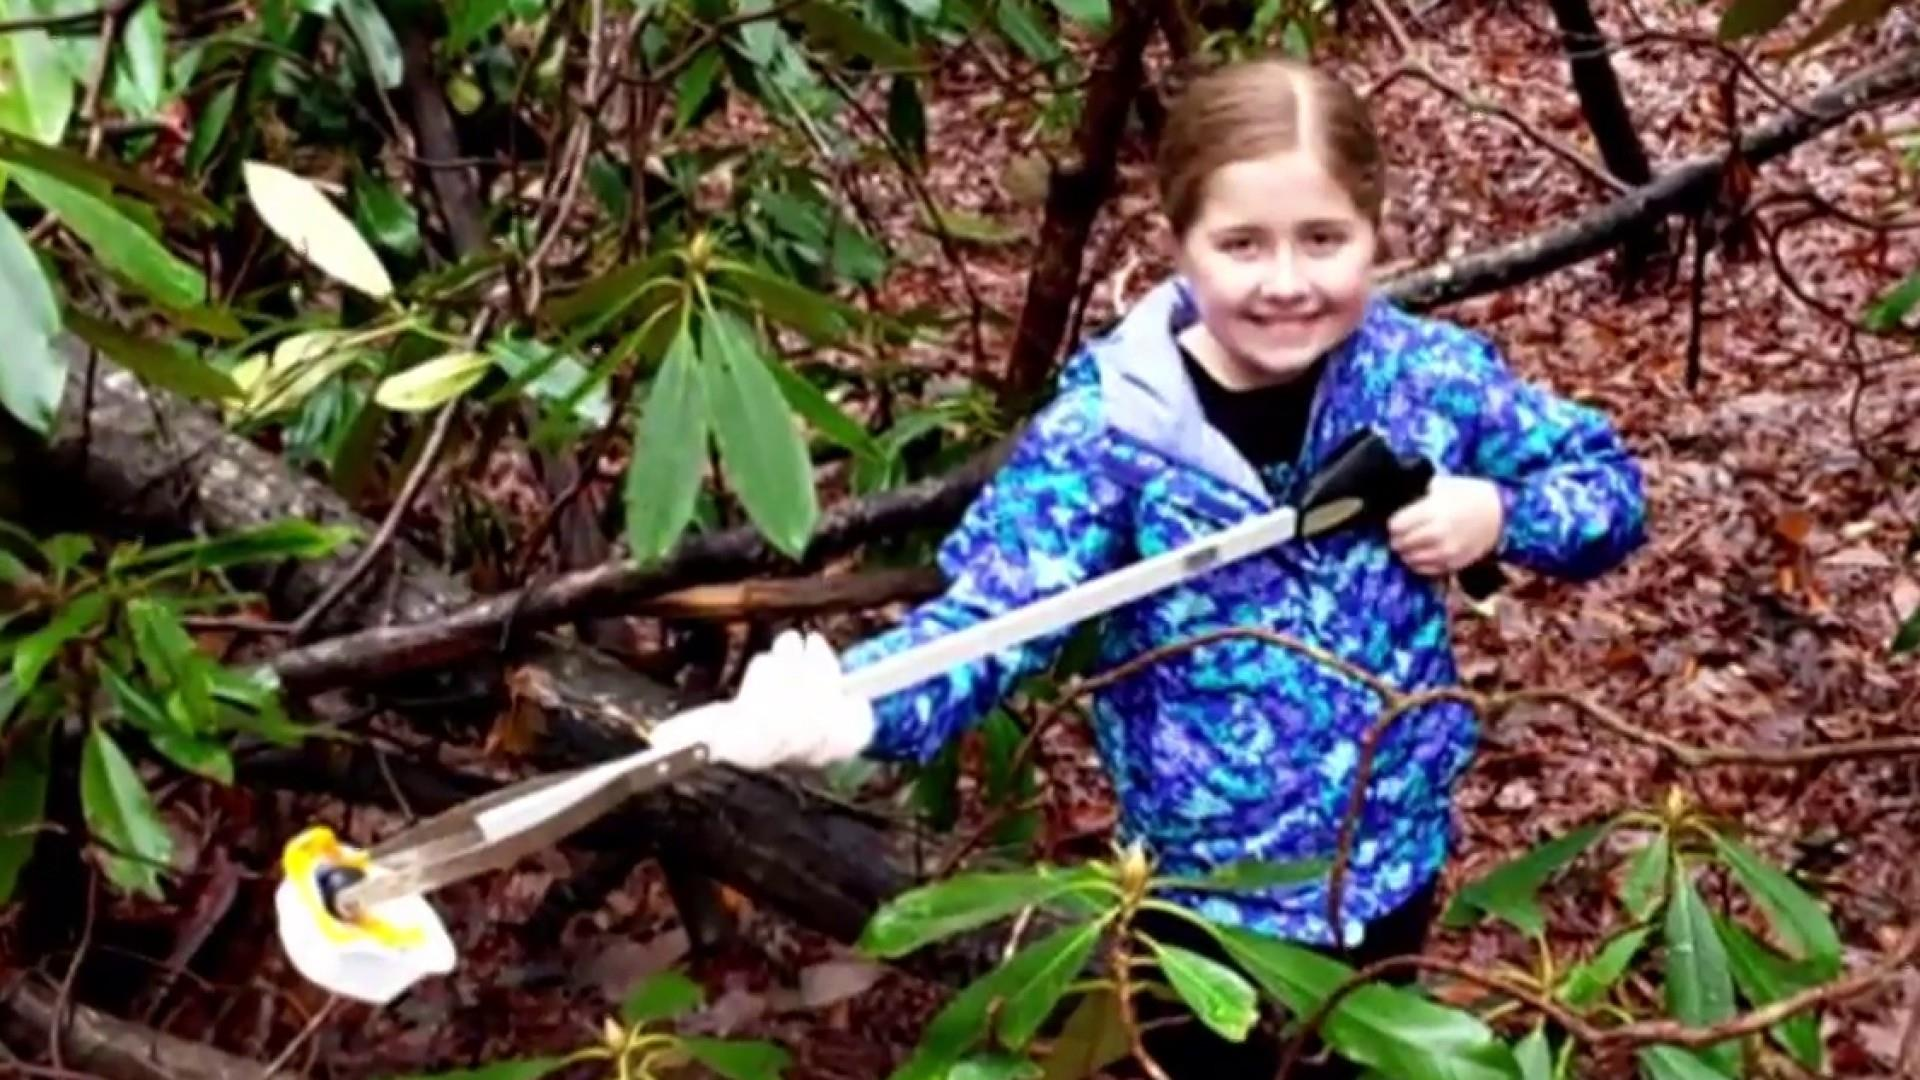 #GoodNewsRUHLES: Dad and daughter clean park during gov't shutdown